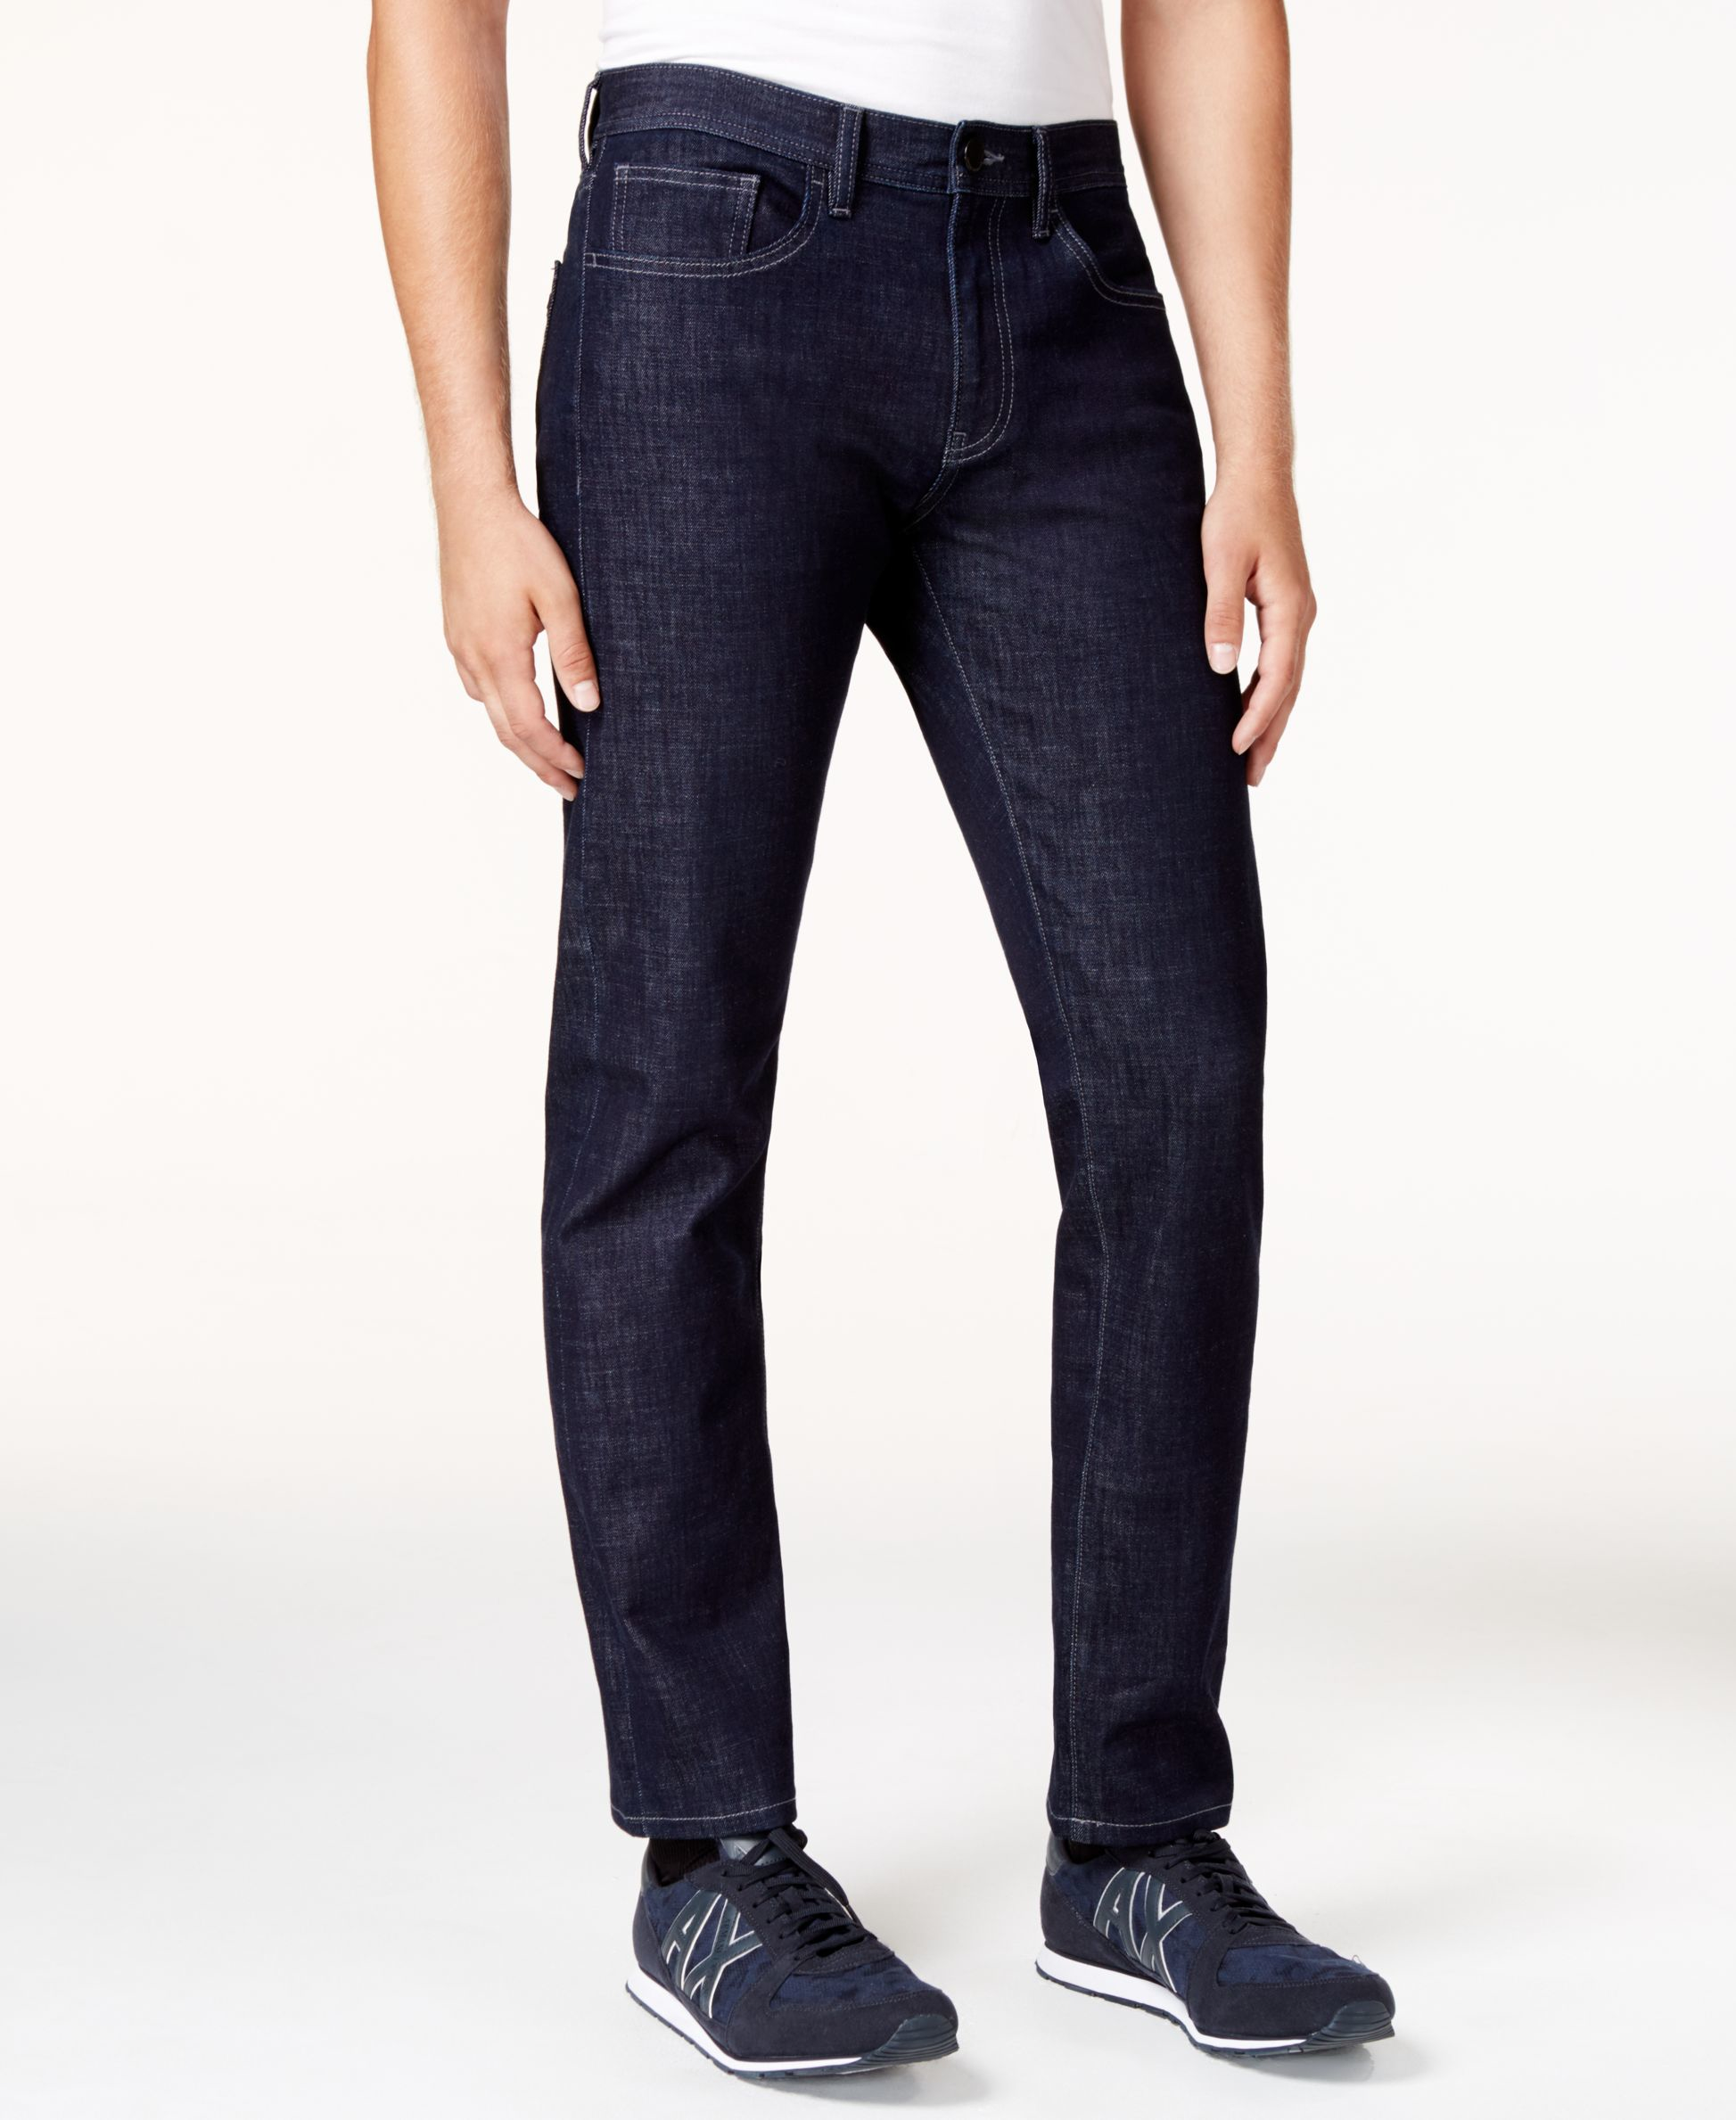 Armani exchange Menu0026#39;s Straight-fit Jeans in Blue for Men (Solid Blue) | Lyst